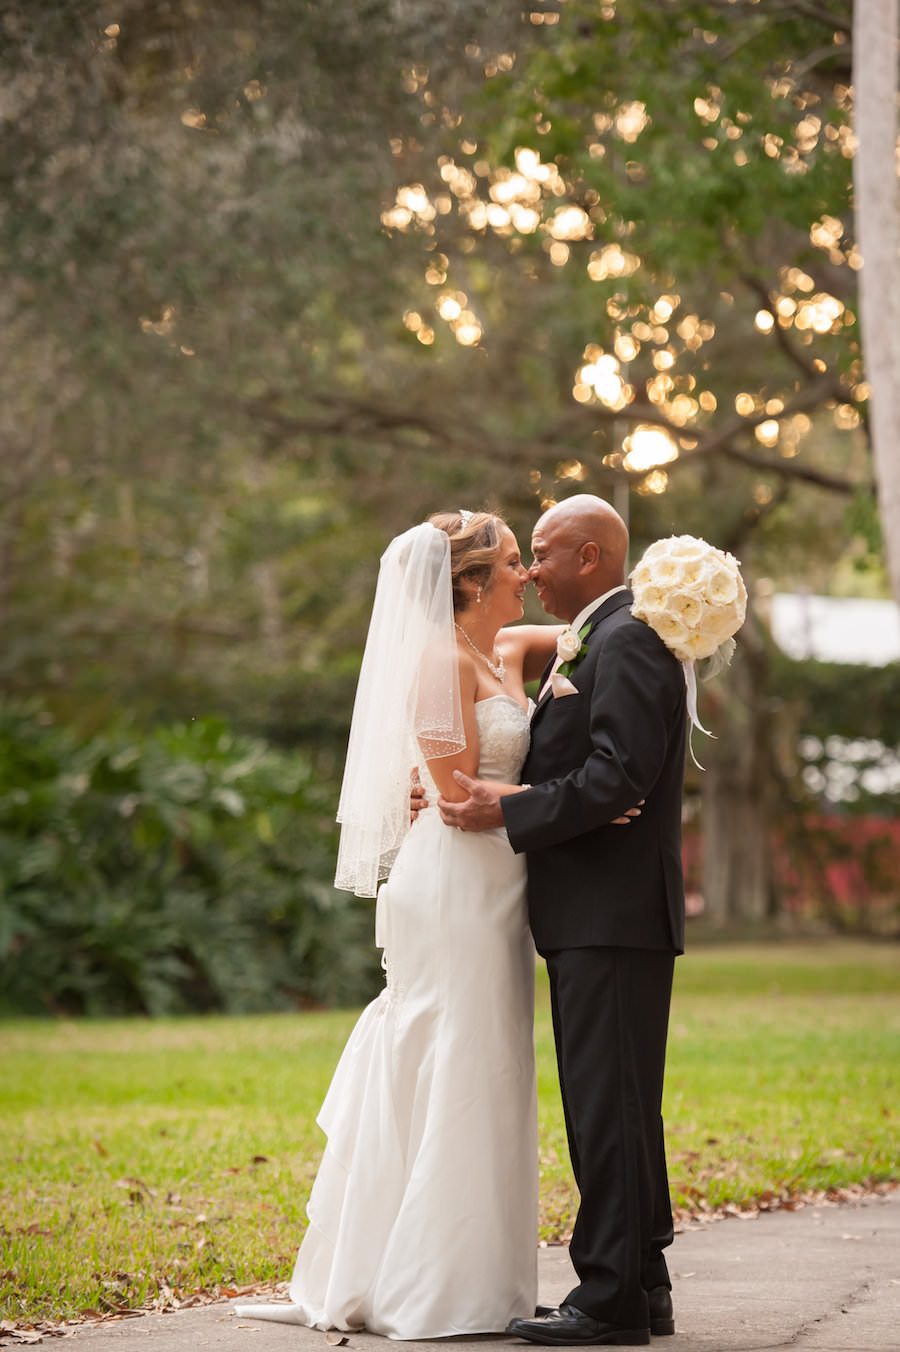 Outdoor, Bride and Groom Wedding Portrait in Strapless, Beaded Ivory Wedding Dress and Black Groom's Suit